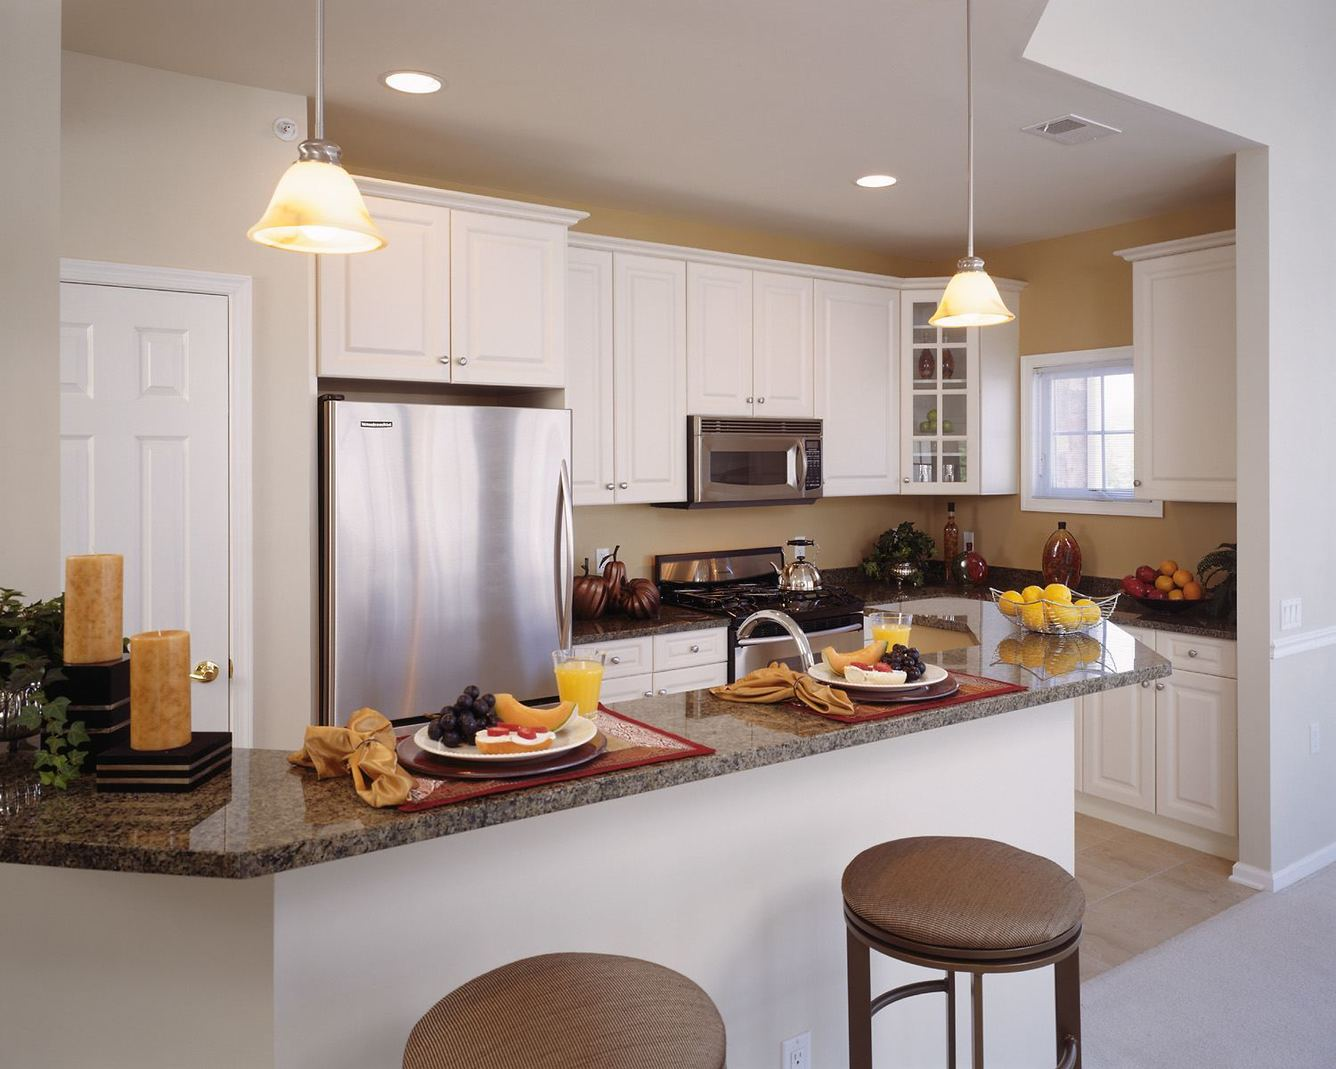 The Enclave - Gourmet Kitchens with Granite Countertops